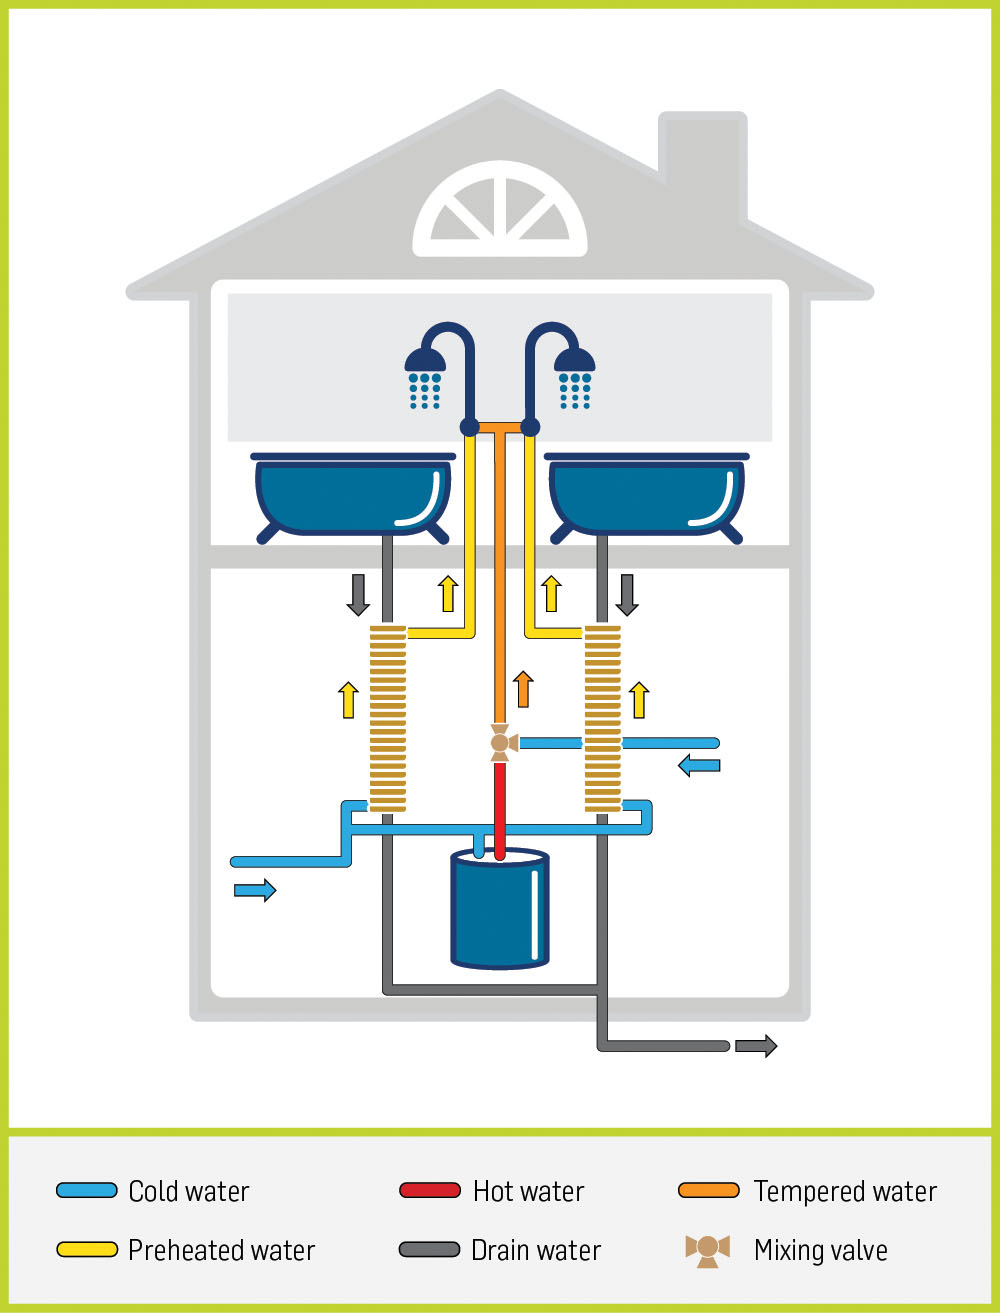 2 showers, 2 stacks, cold water preheat, drain water heat recovery unit, thermodrain, passive heat exchanger